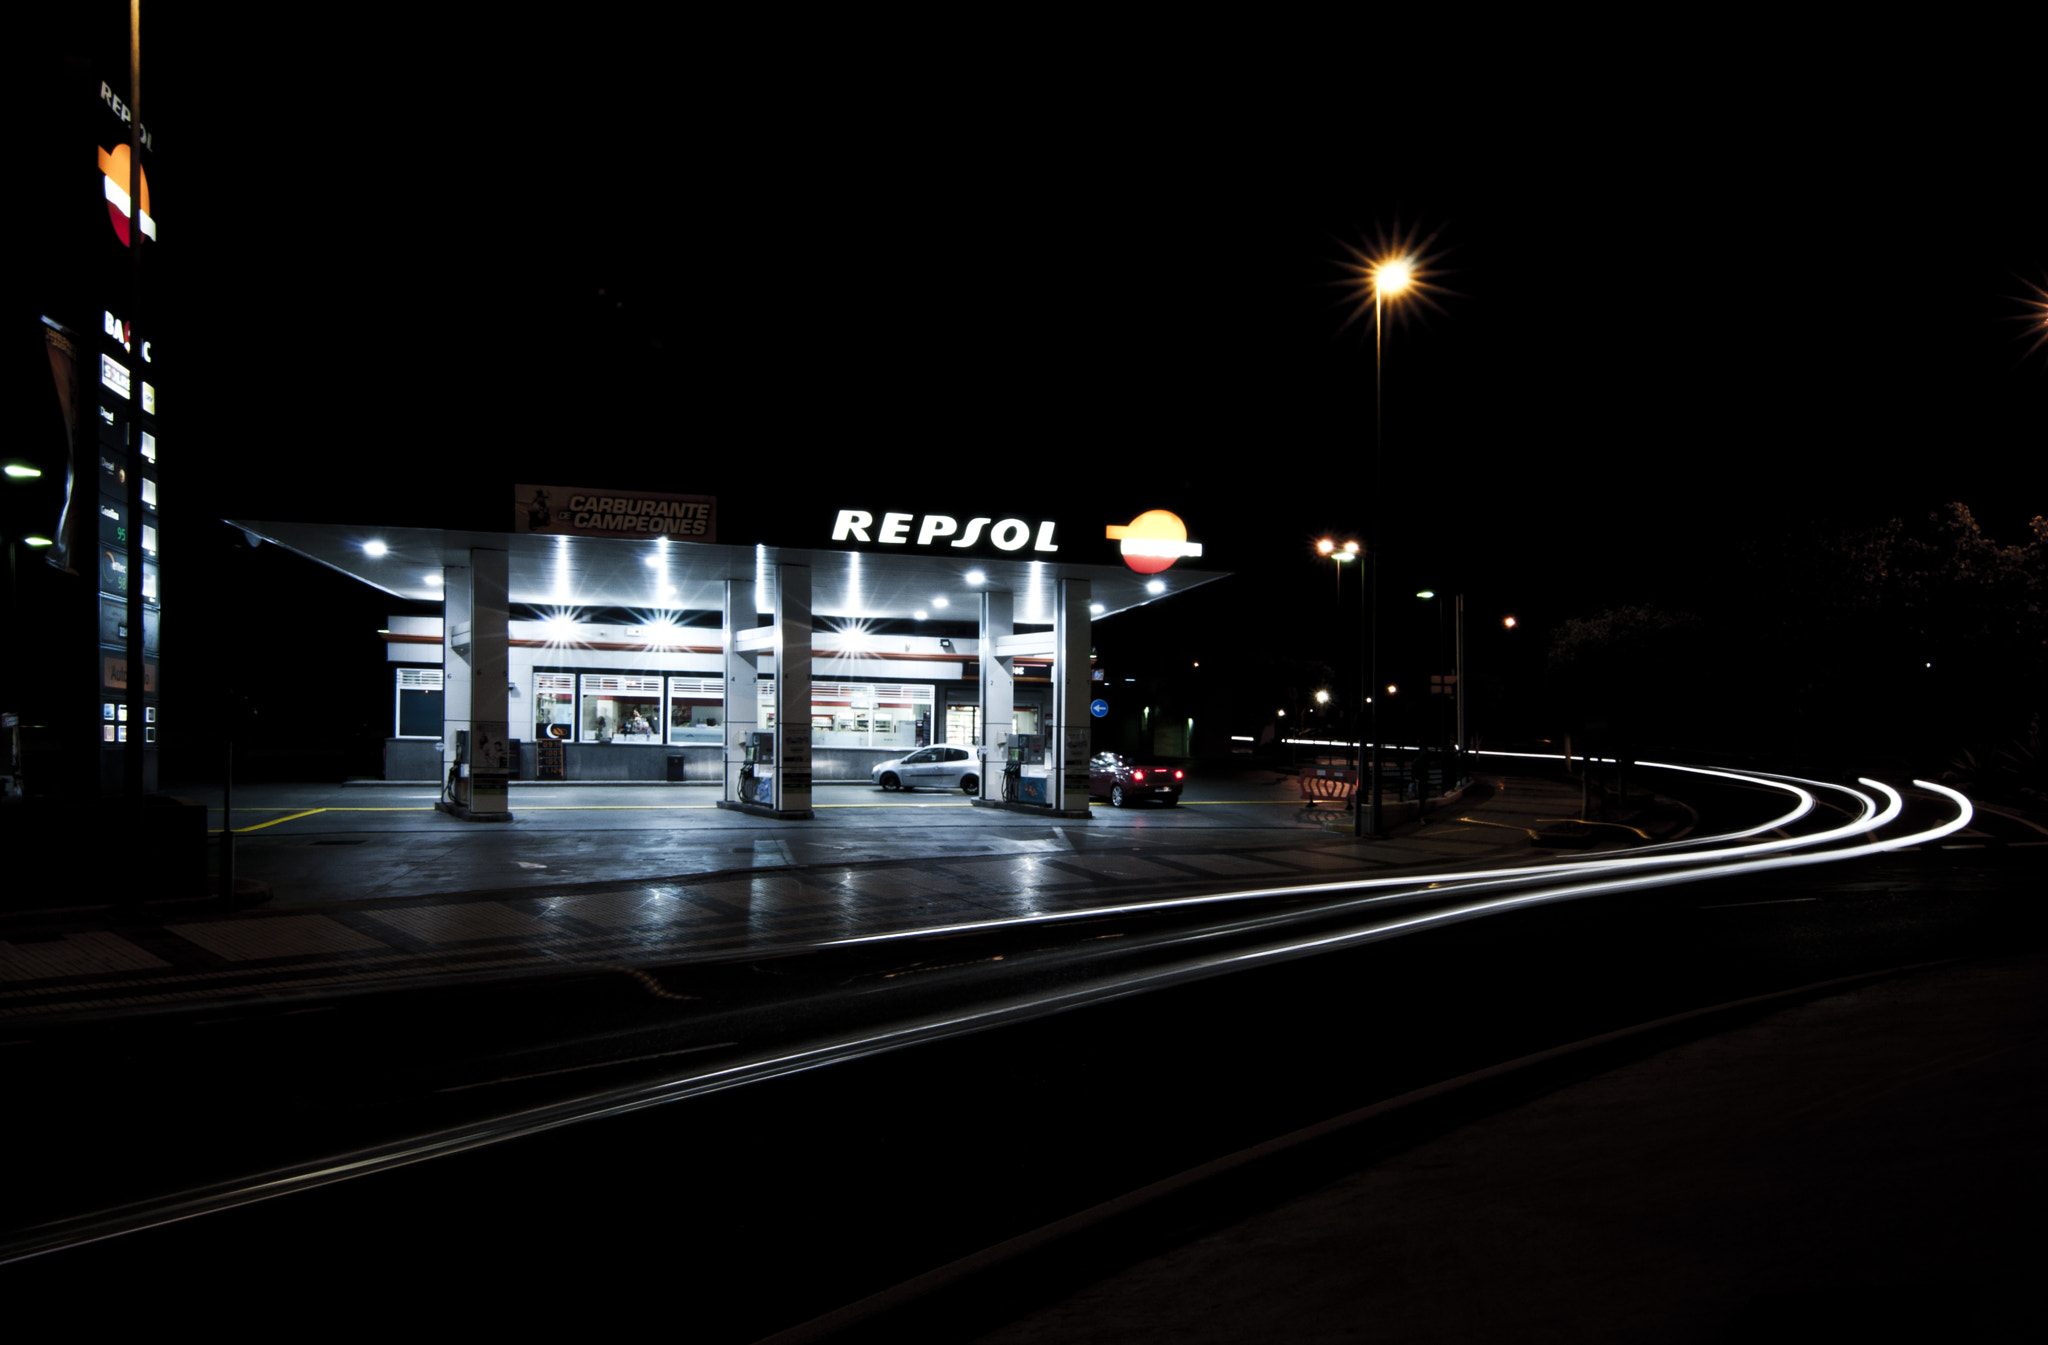 Photograph Repsol by David Azurmendi on 500px